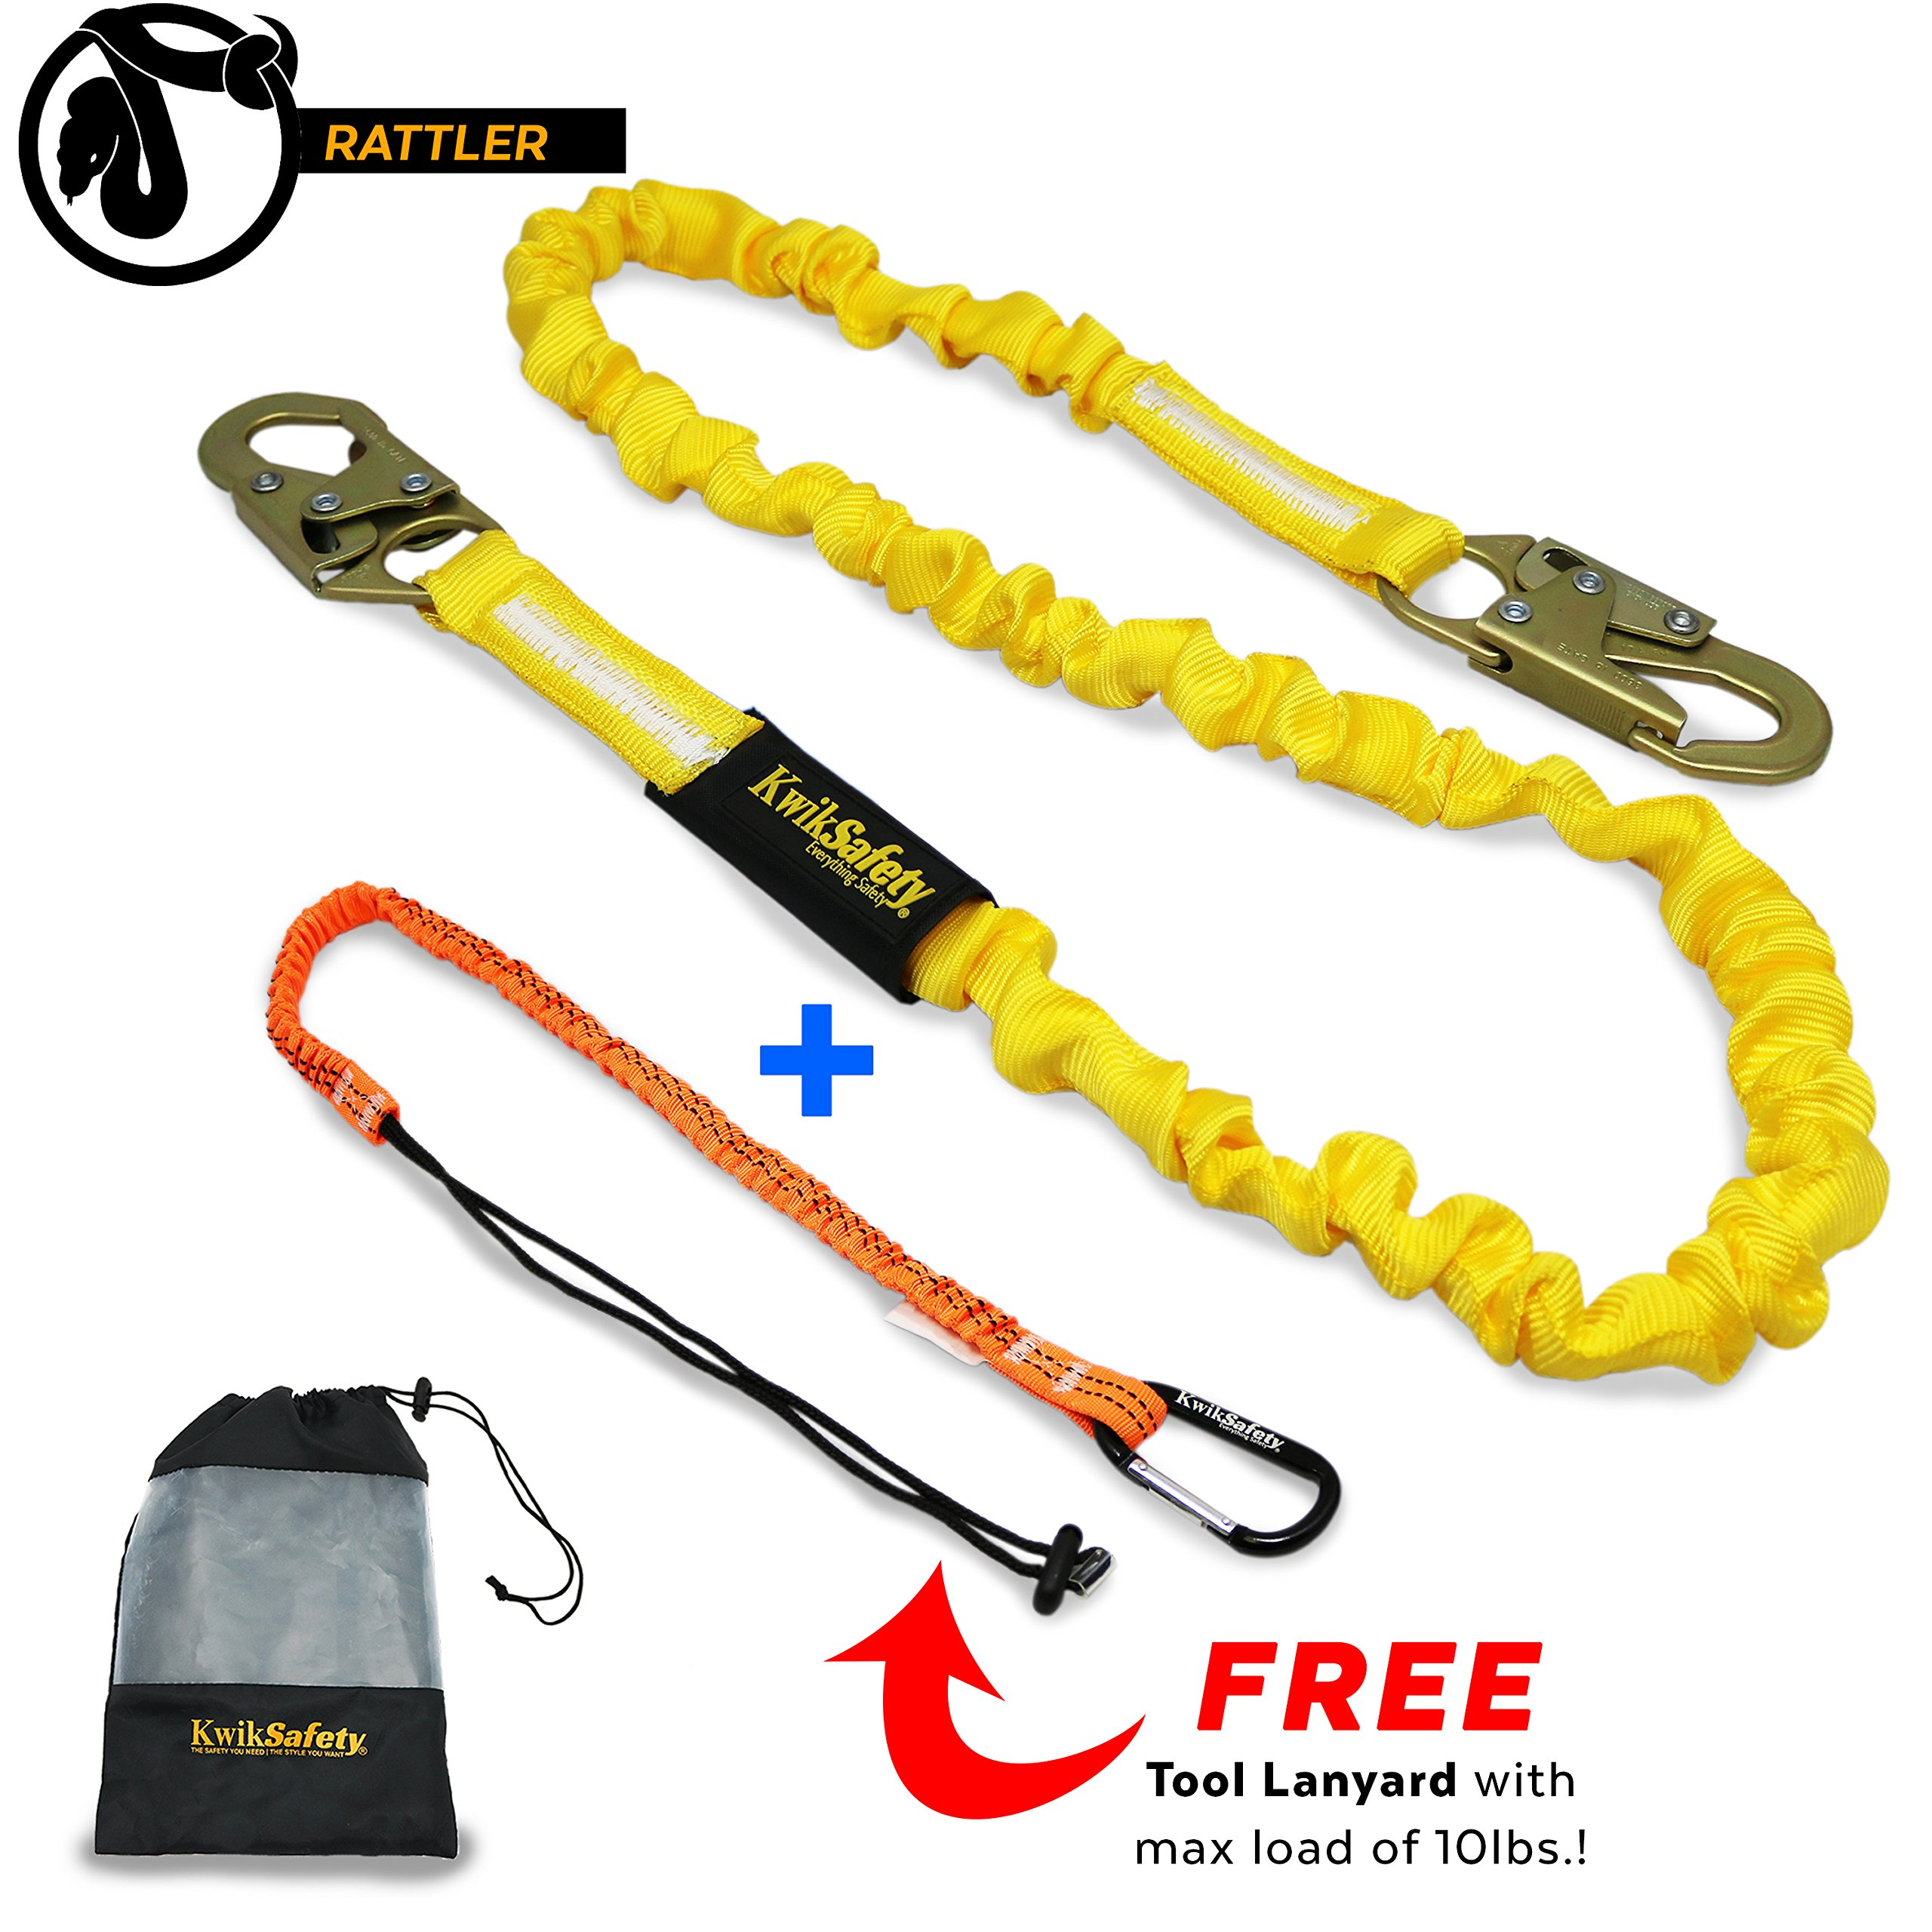 KwikSafety RATTLER | 6ft Tubular Safety Lanyard | 310 lb Capacity | ANSI & OSHA Single Leg Non Stretch Shock Absorbing Lanyard & Snap Hooks with Tool Lanyard 10lbs Max | Fall Protection Equipment by KwikSafety